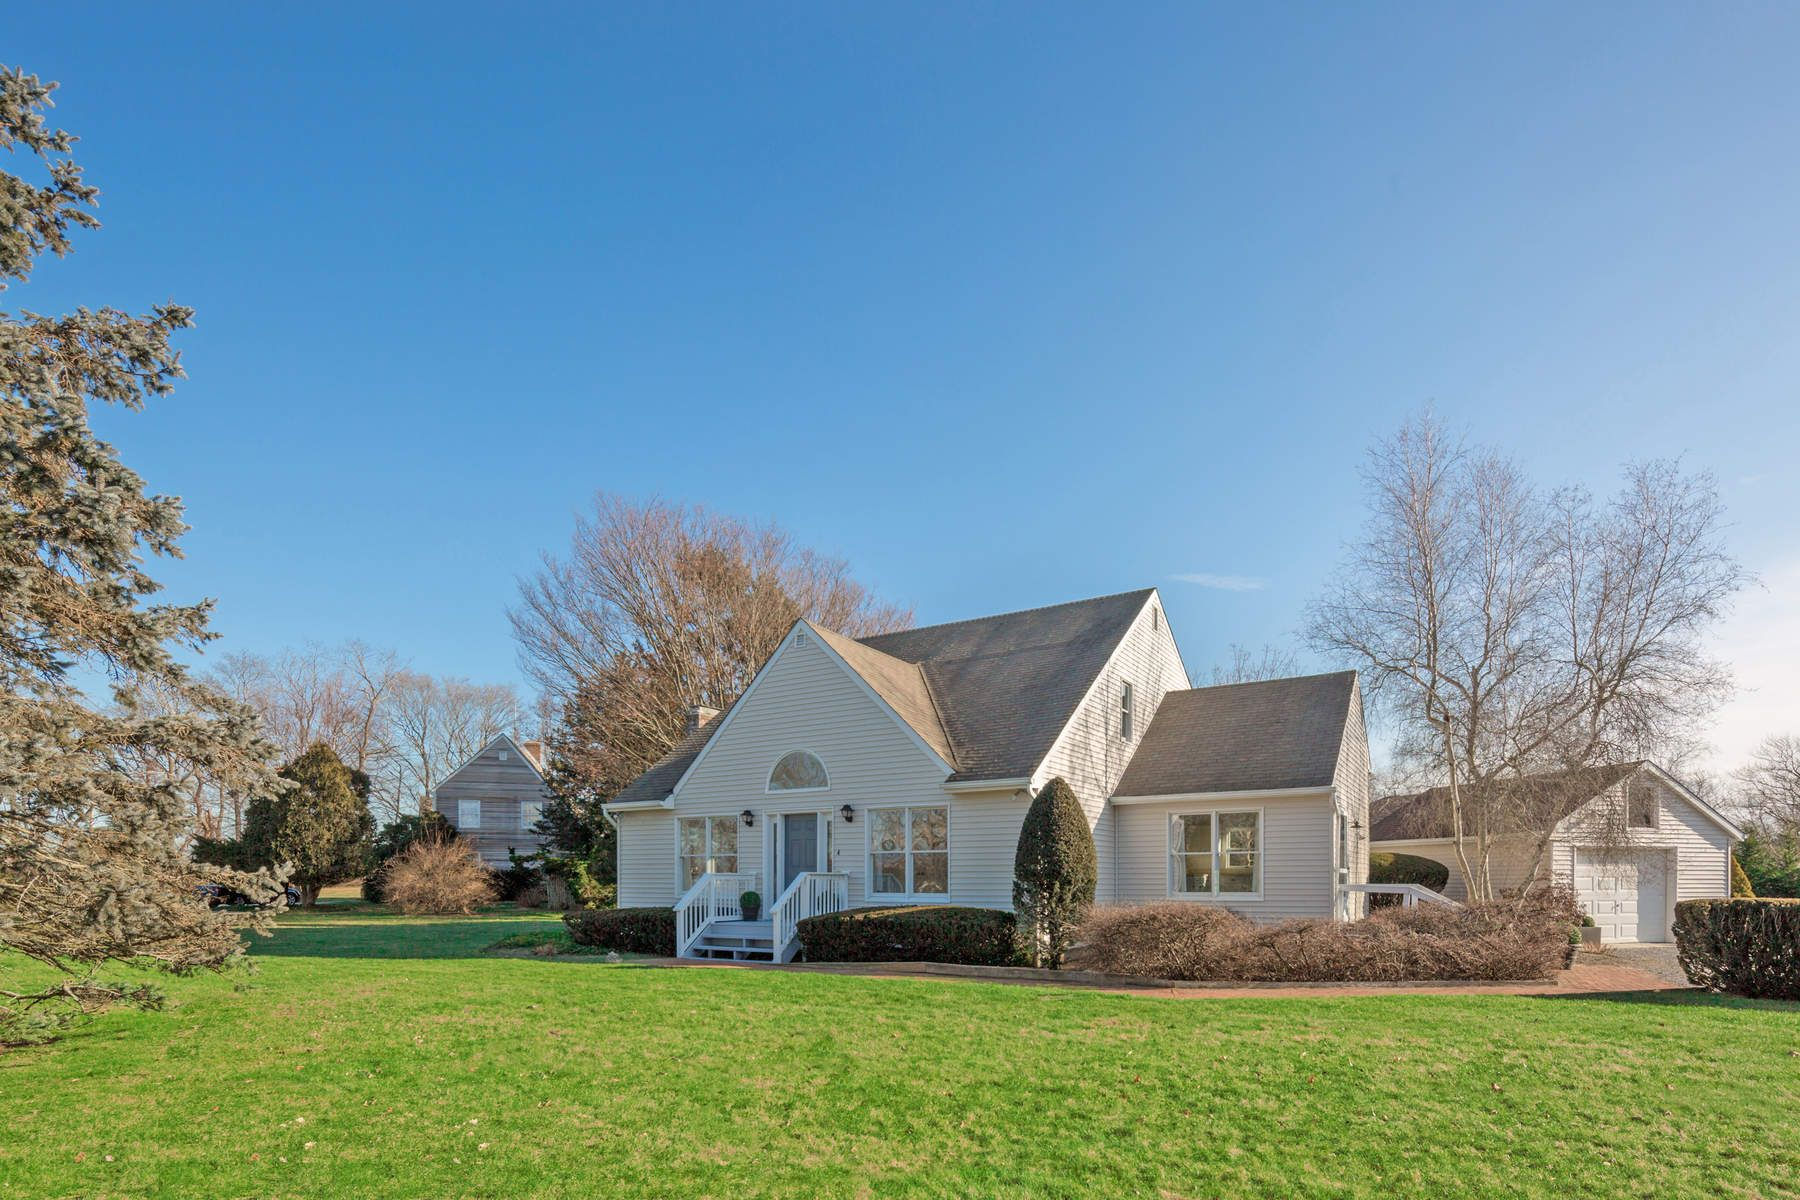 Single Family Home for Sale at Great Investment Potential 4 Flying Point Road, Southampton, New York, 11968 United States